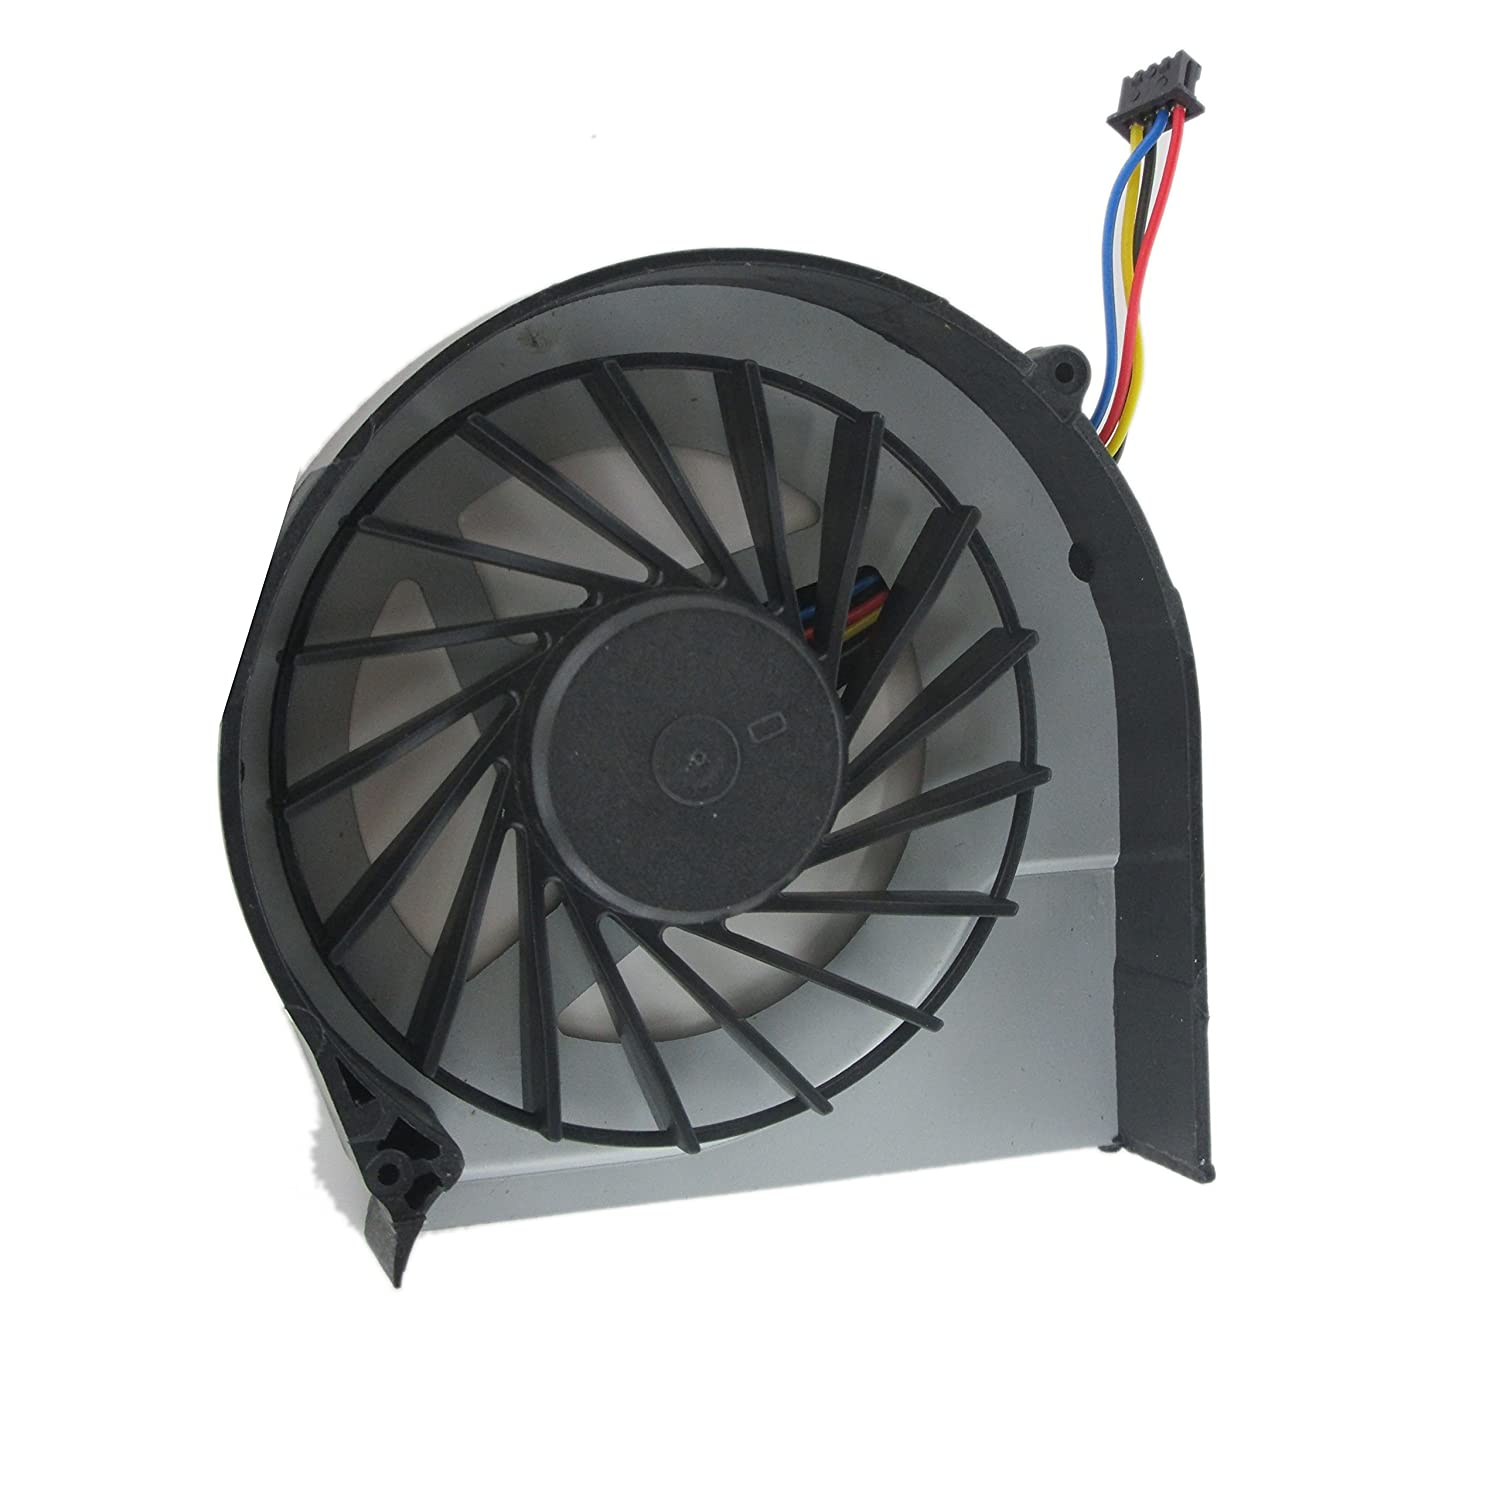 SUNMALL 4 pin 4 Connector New CPU Cooling Fan for HP Pavilion G4 G6 G7 g7-2002xx g7-2010nr g7-2017cl g7-2017u g7-2022us g7-2023cl g7-2030ca g7-2033ca g7-2052xx g7-2054ca g7-2069wm g7-2111nr g7-2361nr